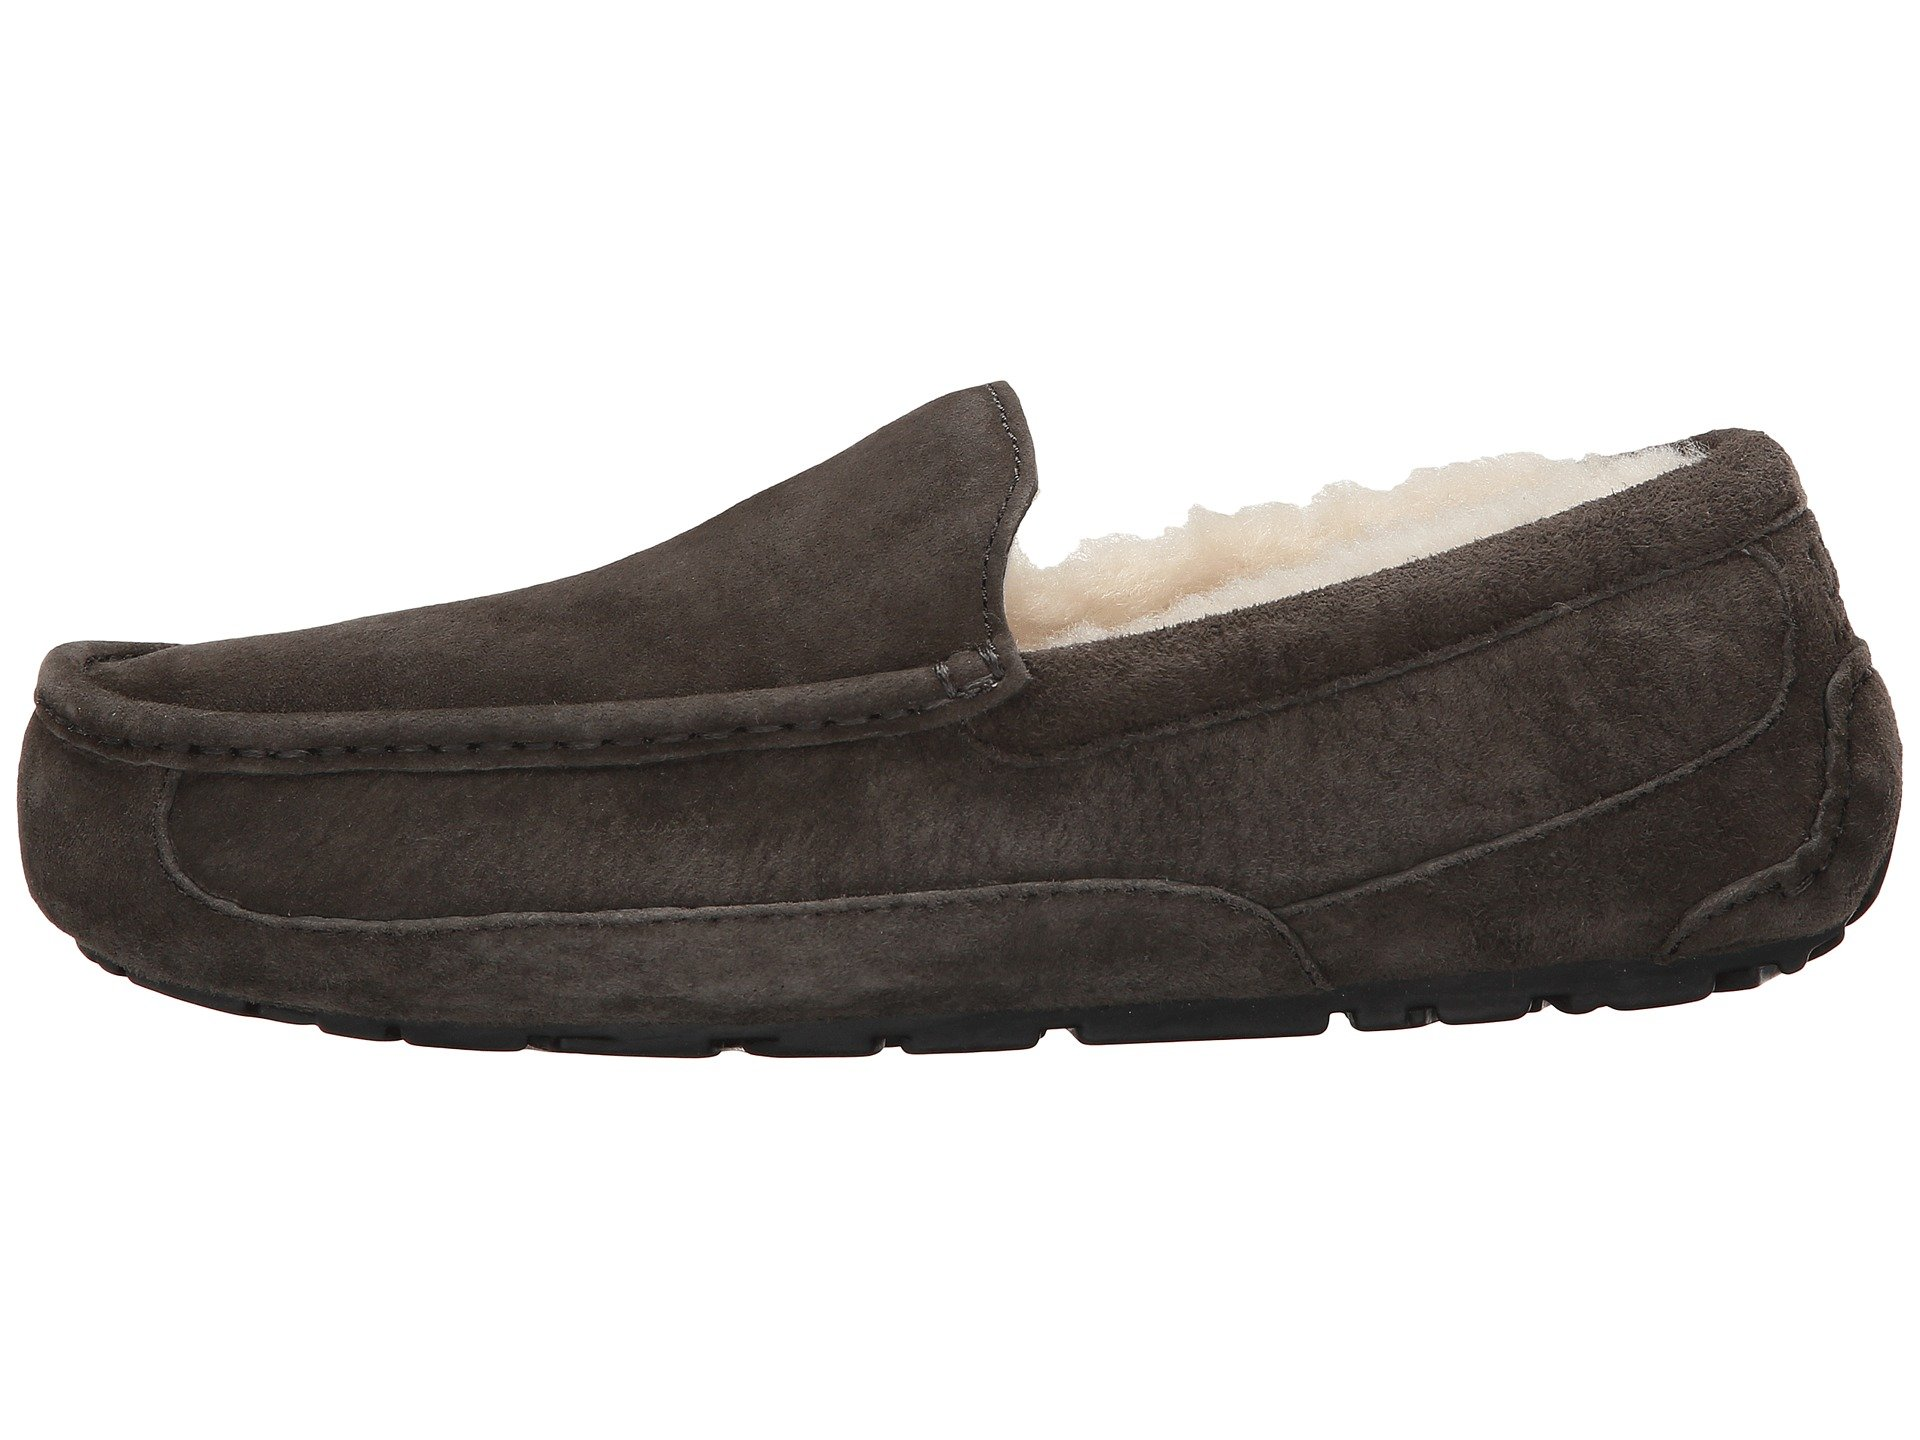 Wide Ugg Charcoal Wide Ascot Wide Charcoal Ascot Ugg Ascot Ugg OqwHn4d1